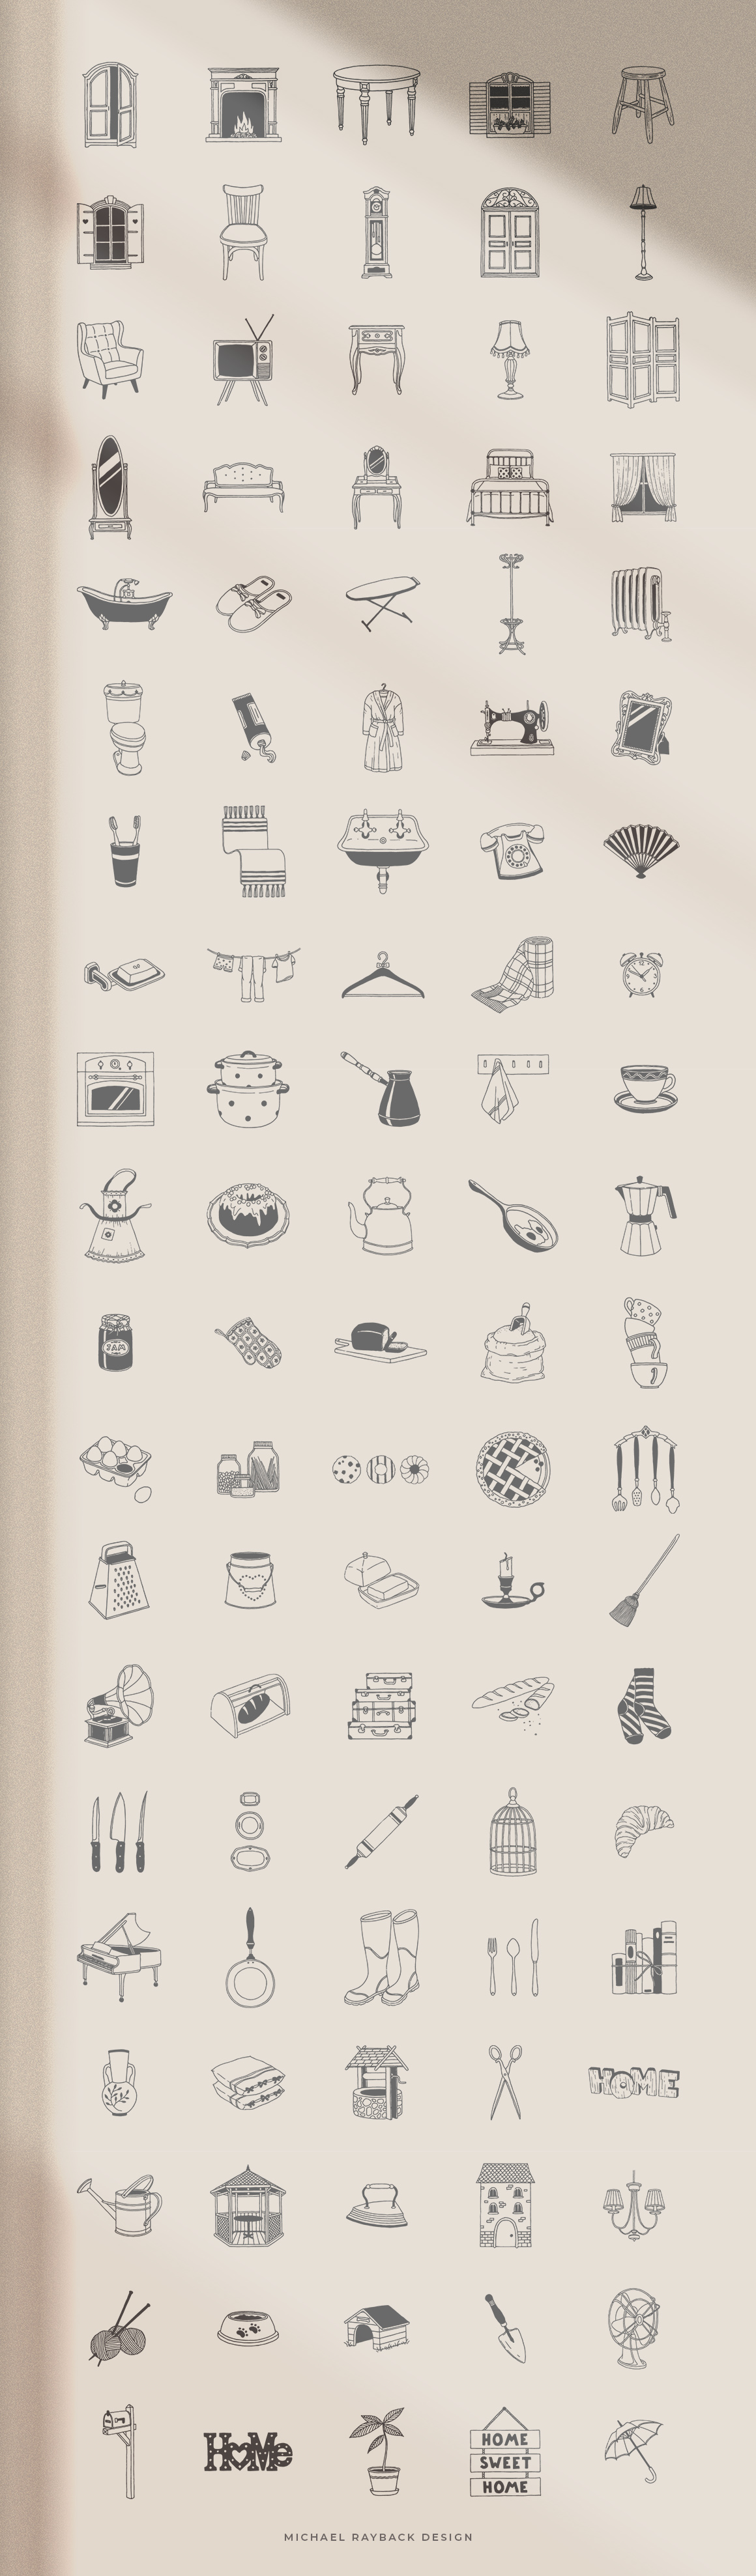 100 Hand Drawn Elements - Home